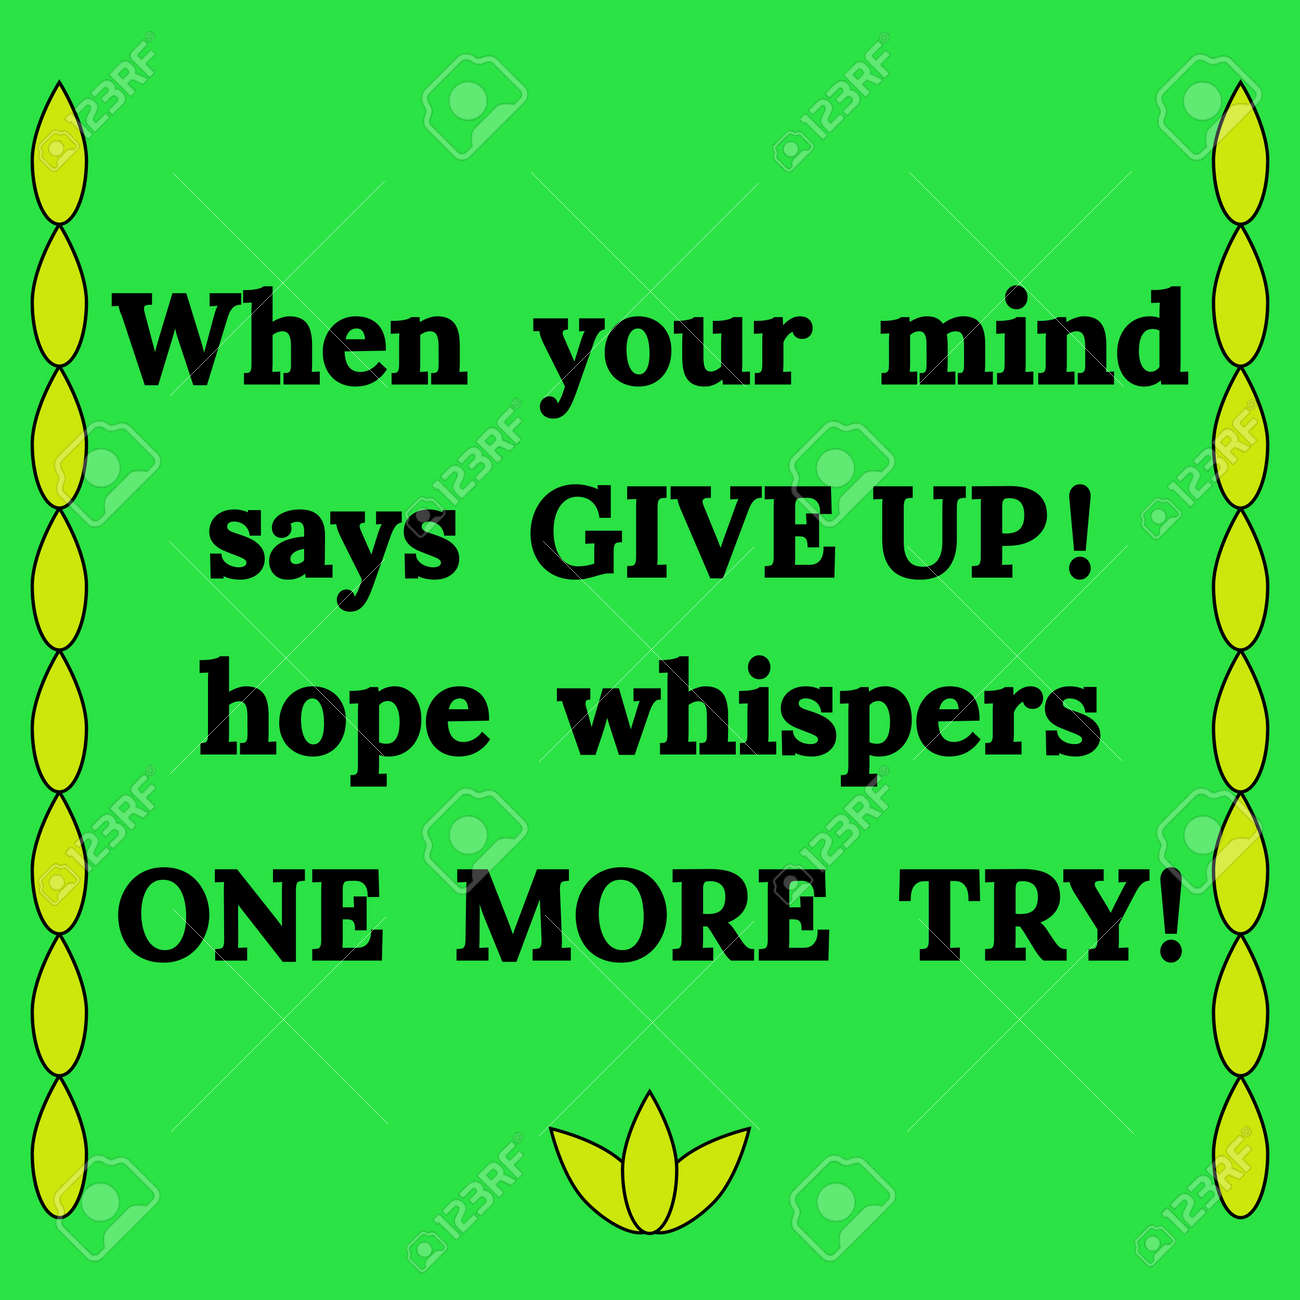 Free Your Mind Quotes Motivational Quotewhen Your Mind Says Give Up Hope Whispers